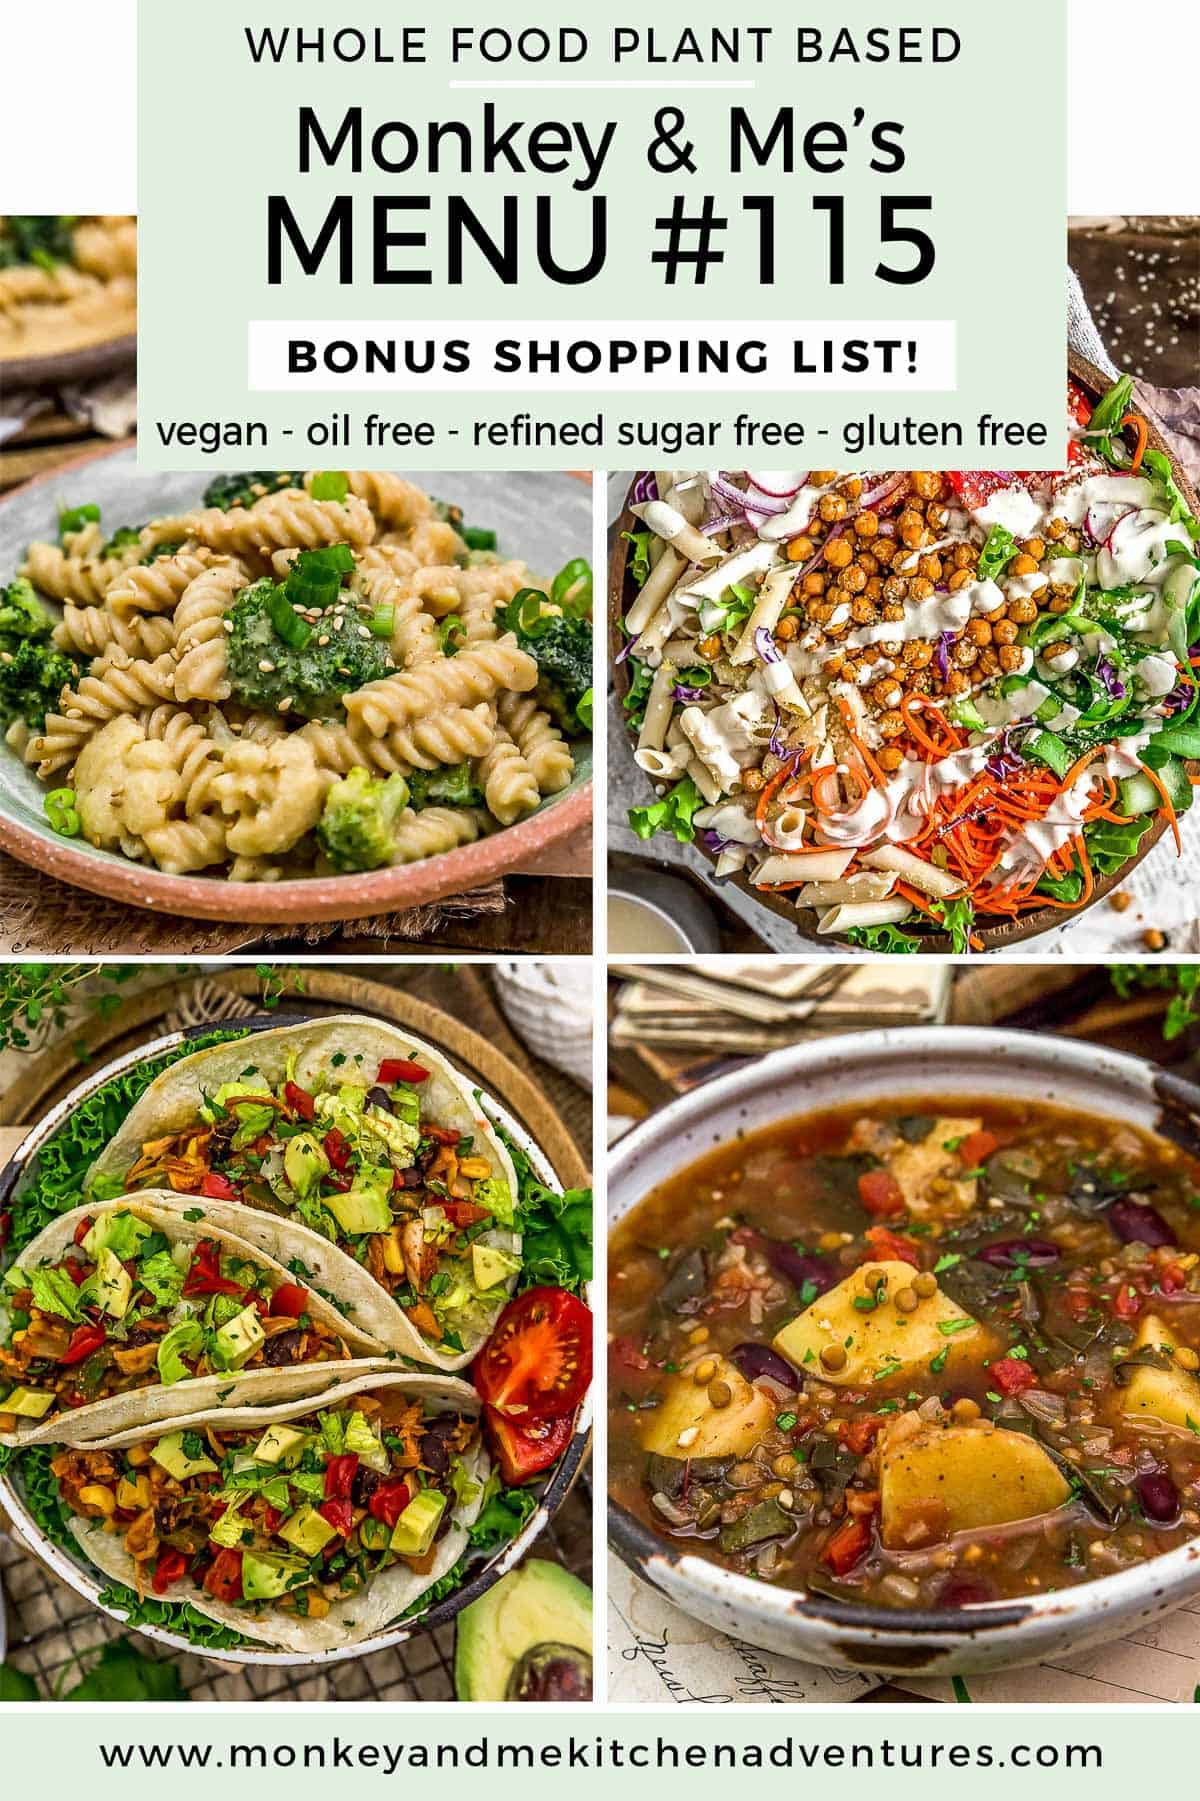 Monkey and Me's Menu 115 featuring 4 recipes